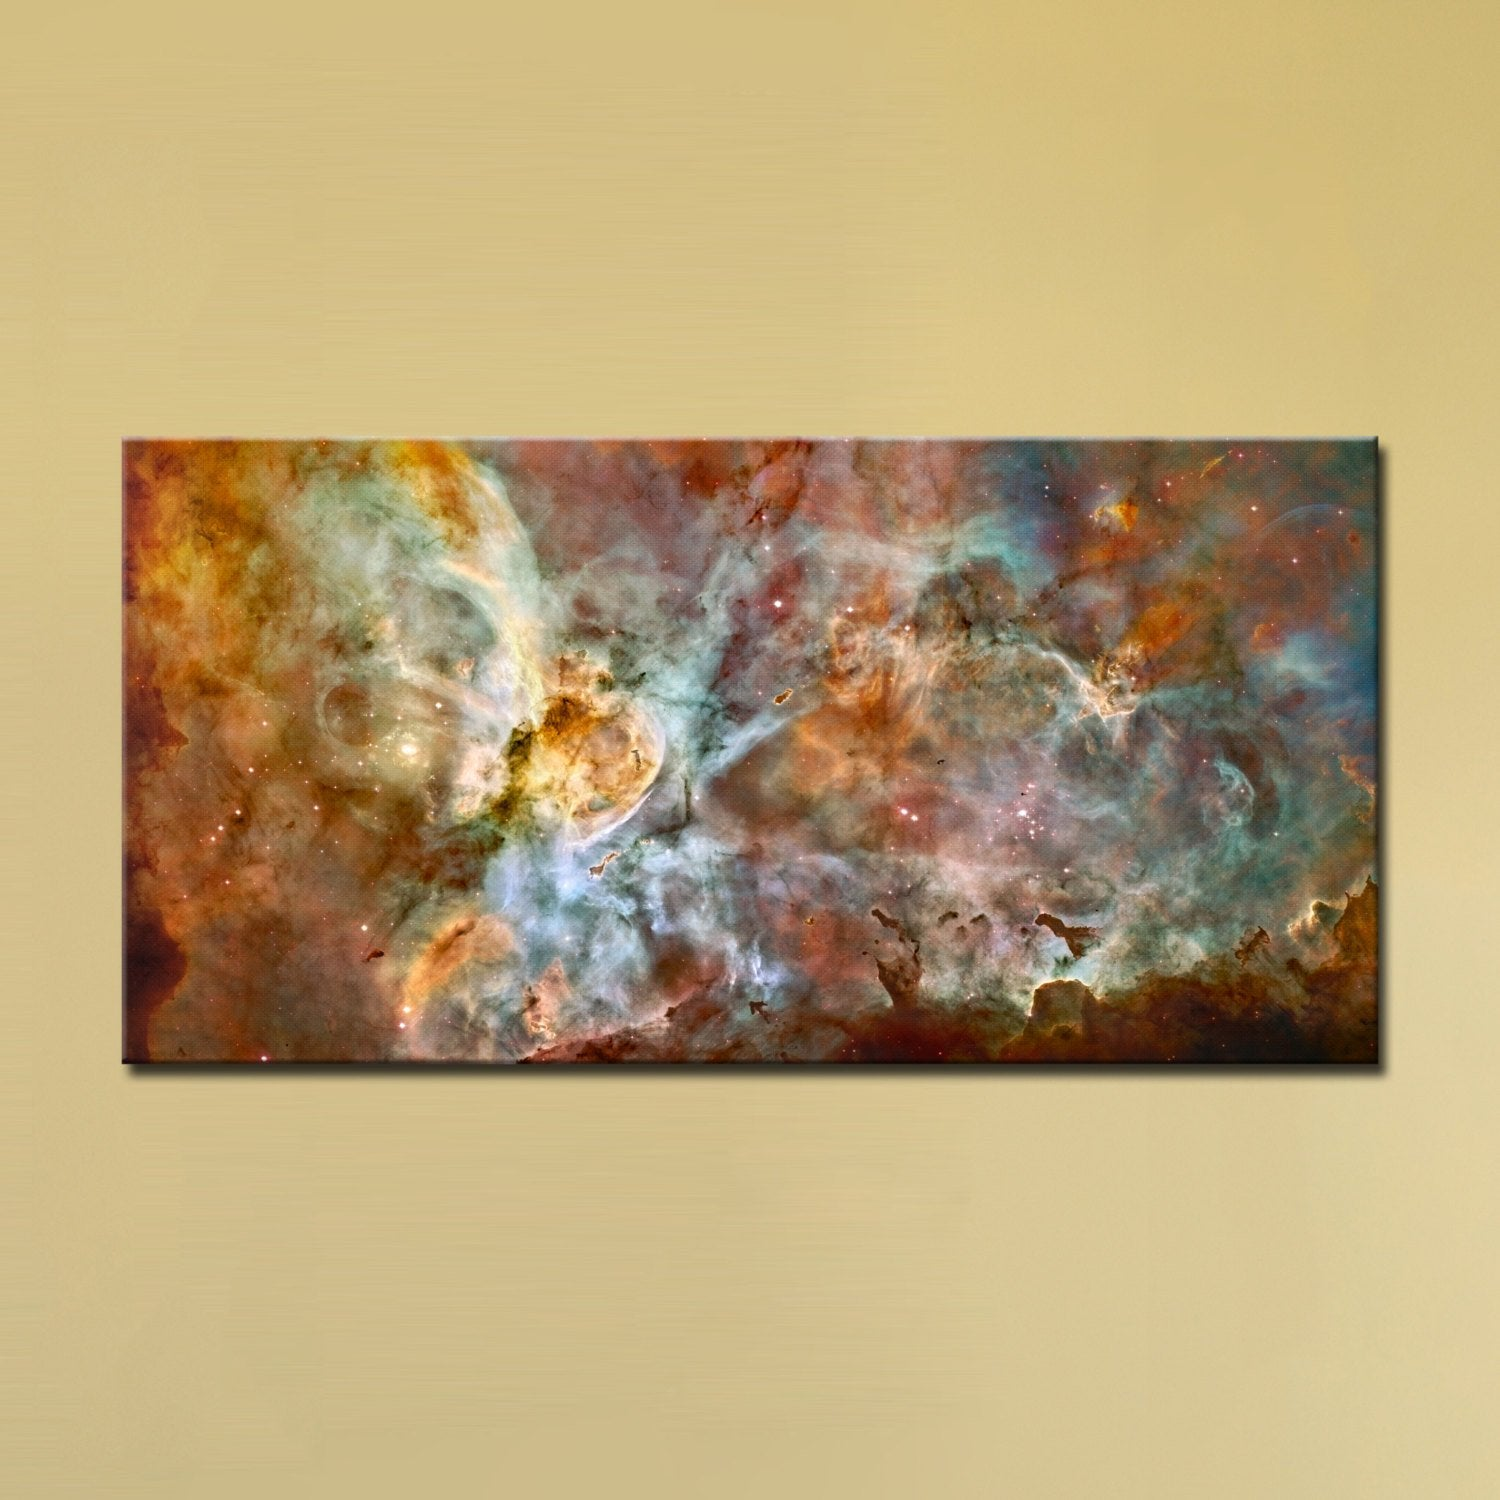 "The Carina Nebula, Star Birth in the Extreme (Color) (24"" x 36"") - Canvas Wrap Print"